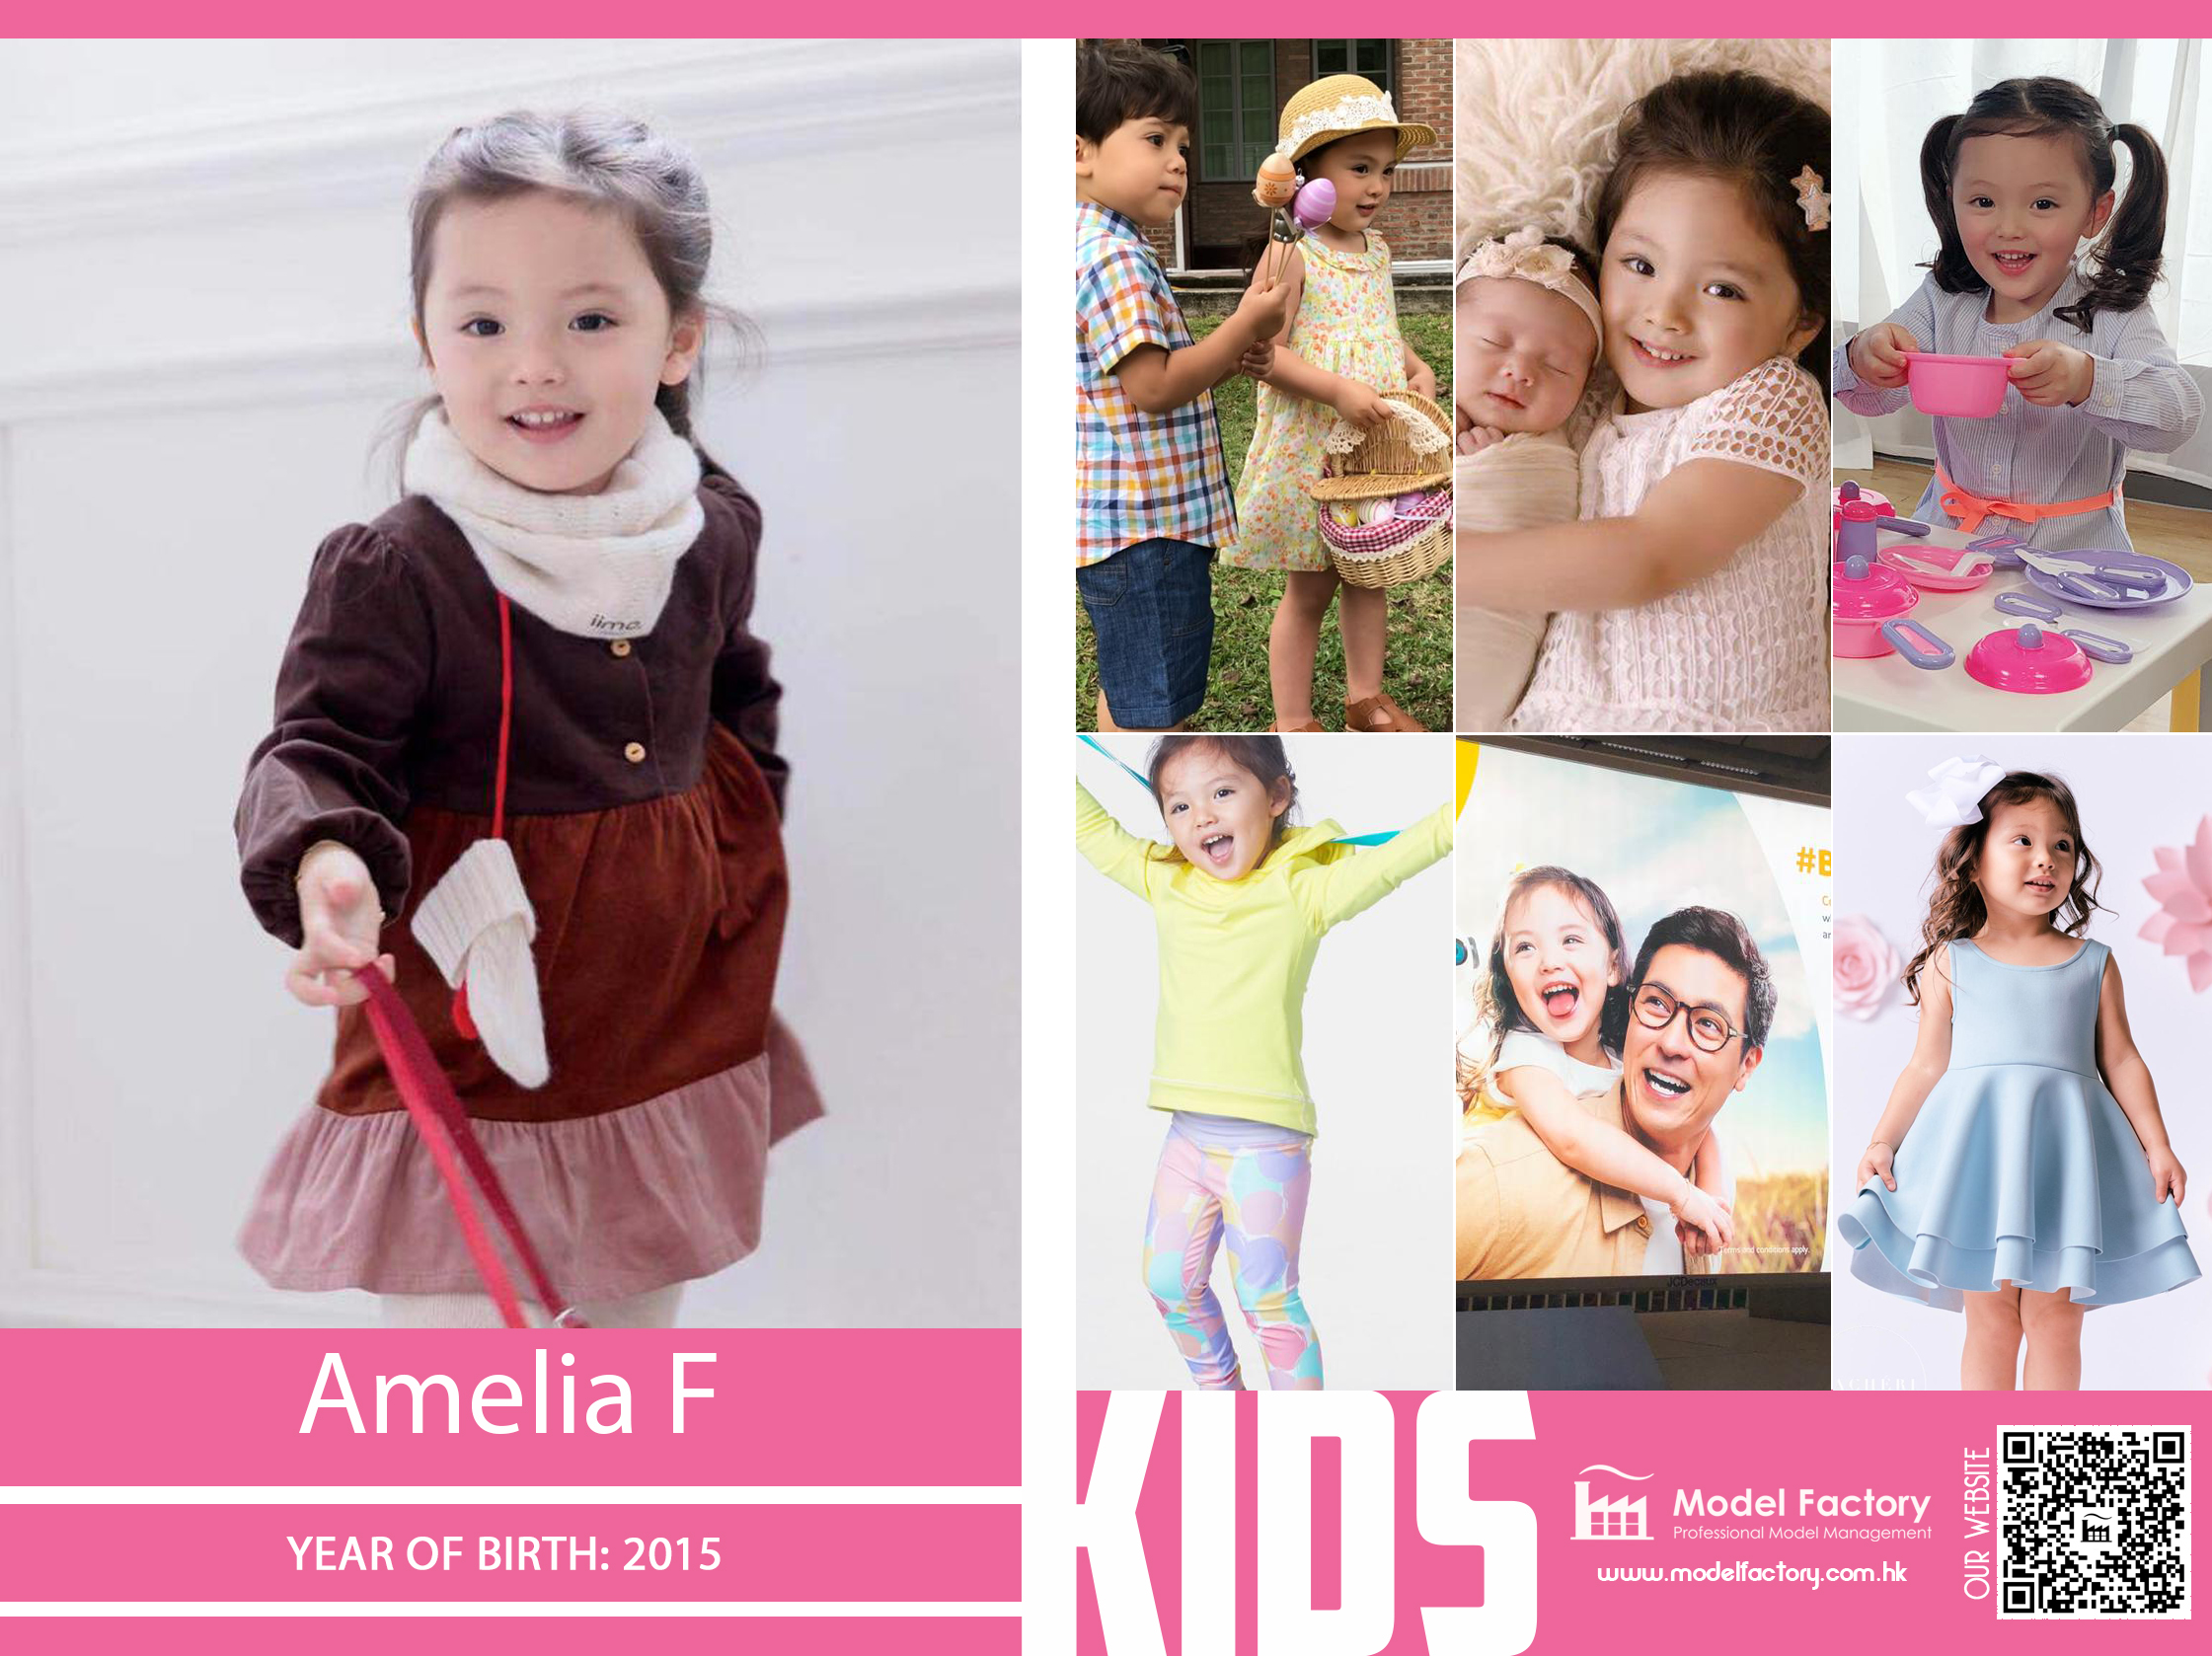 Model Factory Mix Kids Model AmeliaF